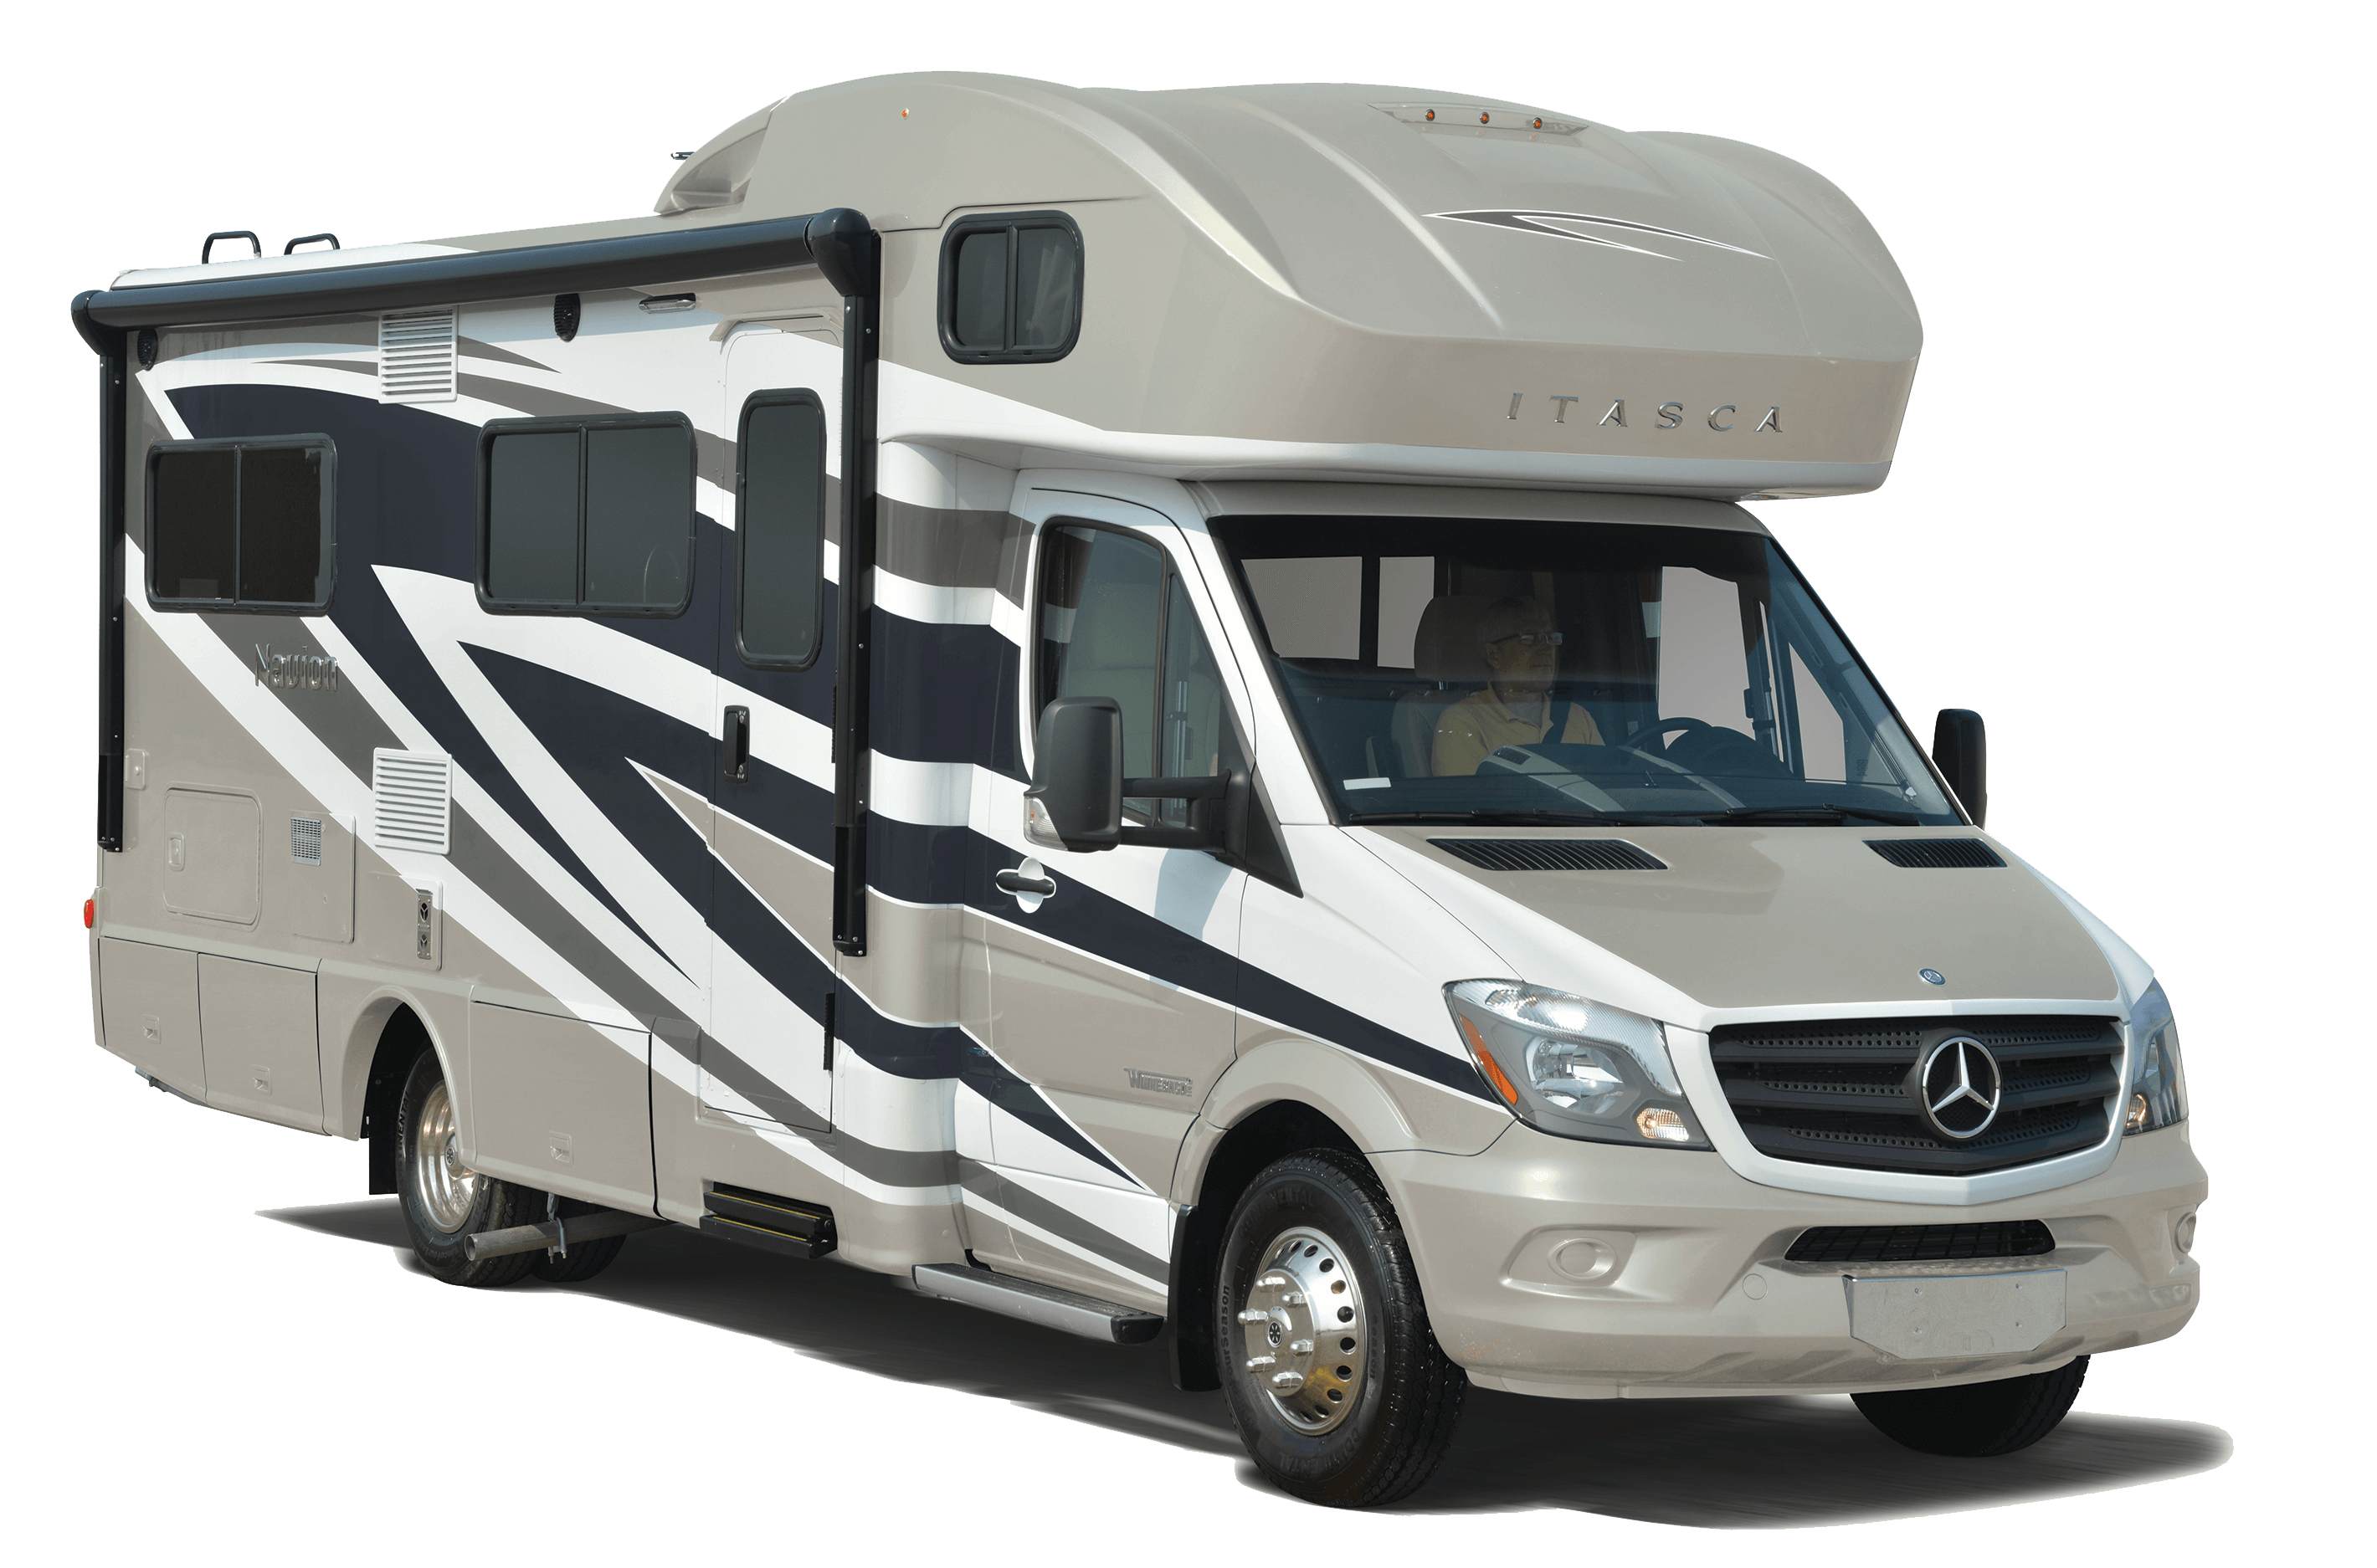 Mercedes Benz Rv >> Navion Class C Motor Home | General RV Center